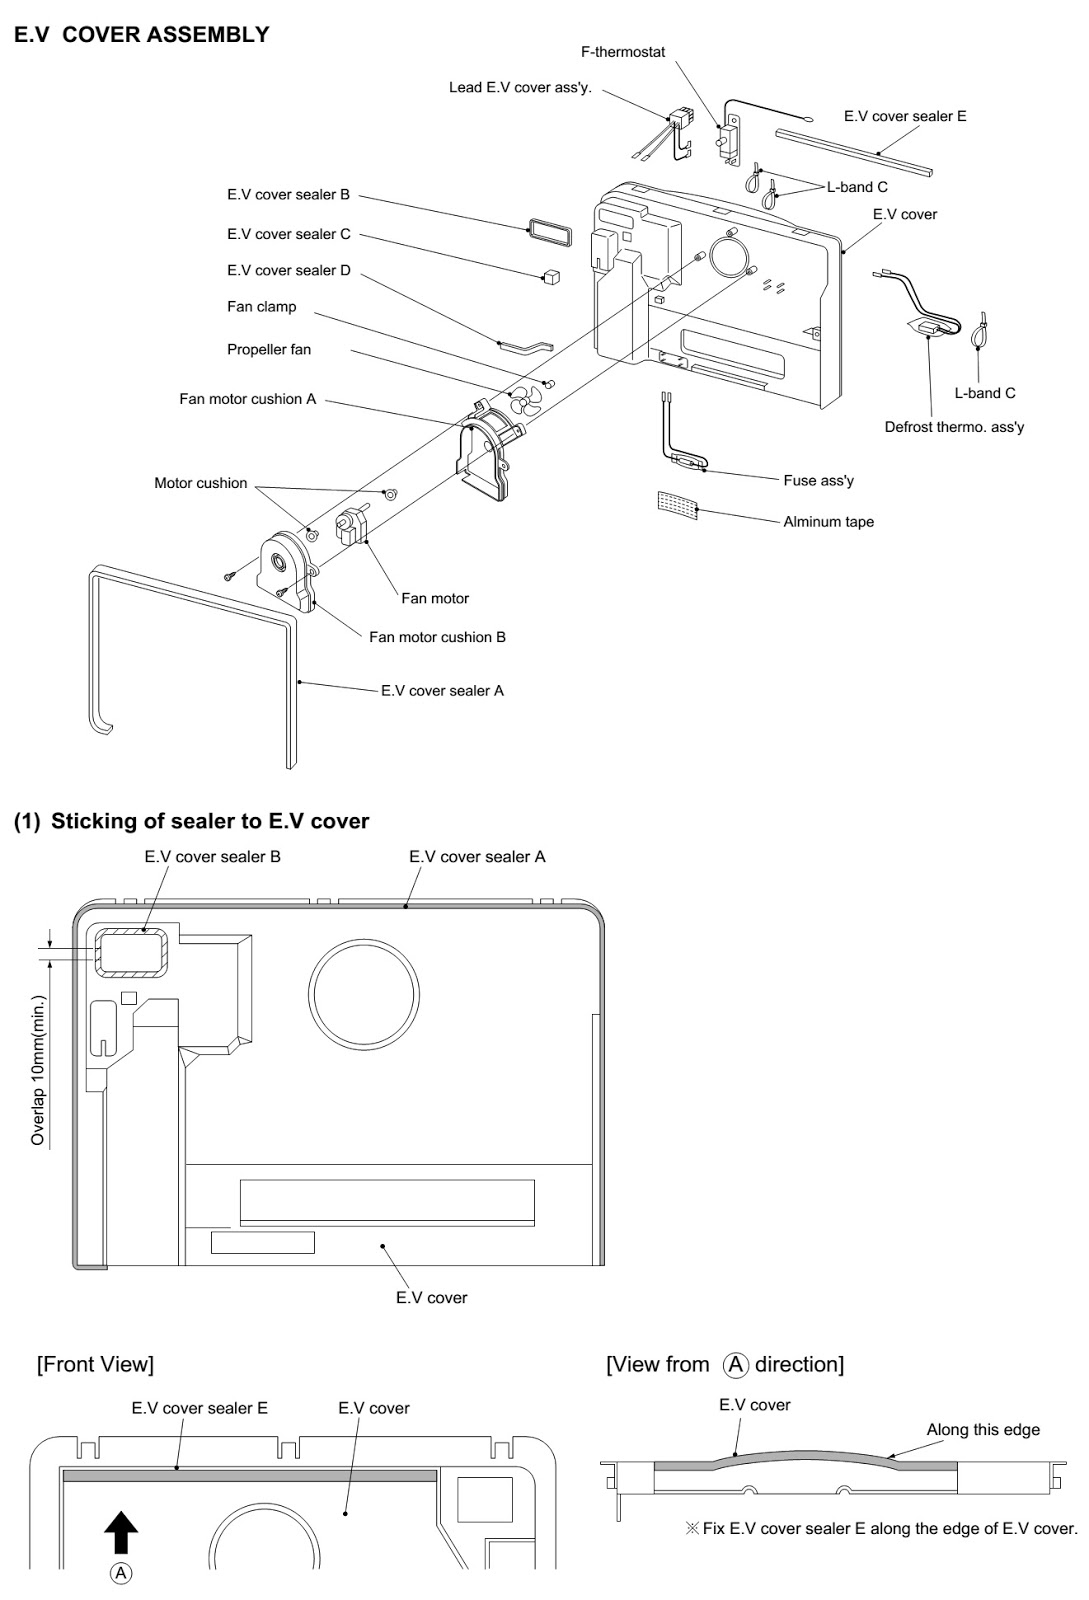 amplifier circuit diagram schematic e v cover assembly [ 1089 x 1600 Pixel ]